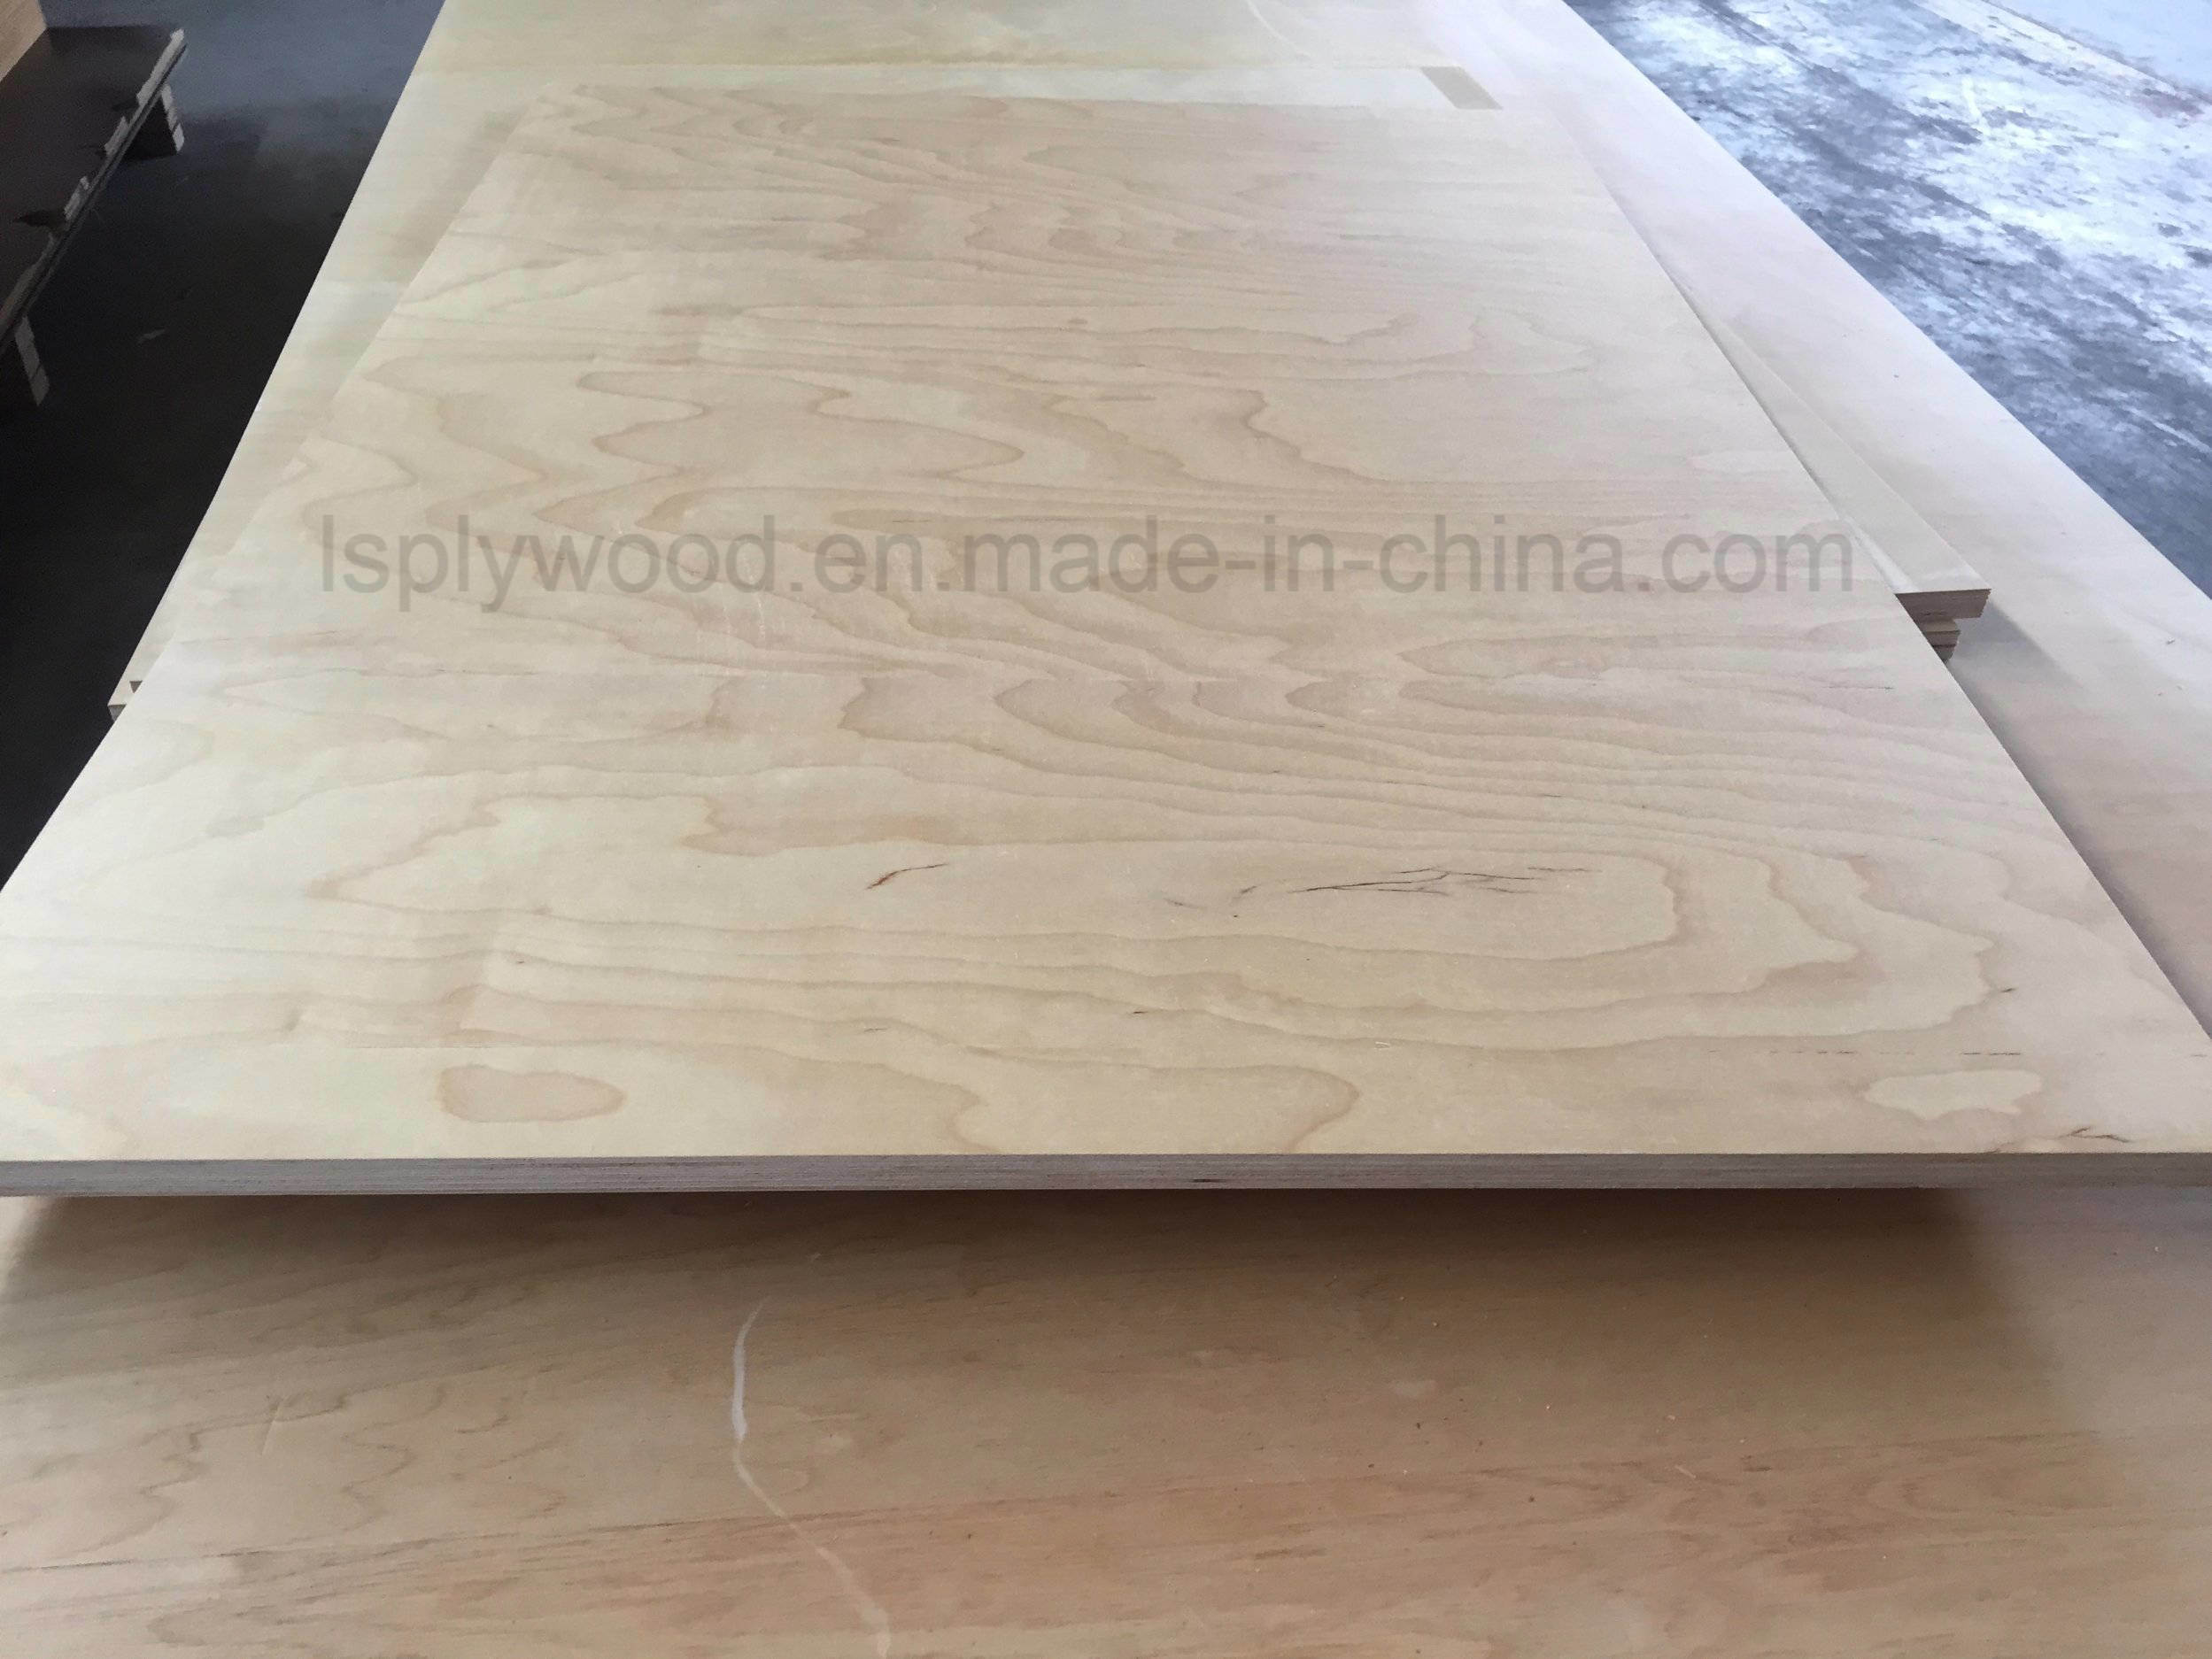 is poplar good for furniture. 18mm Sandwich Plywood Poplar With HPL White Ply Board Is Good For Furniture